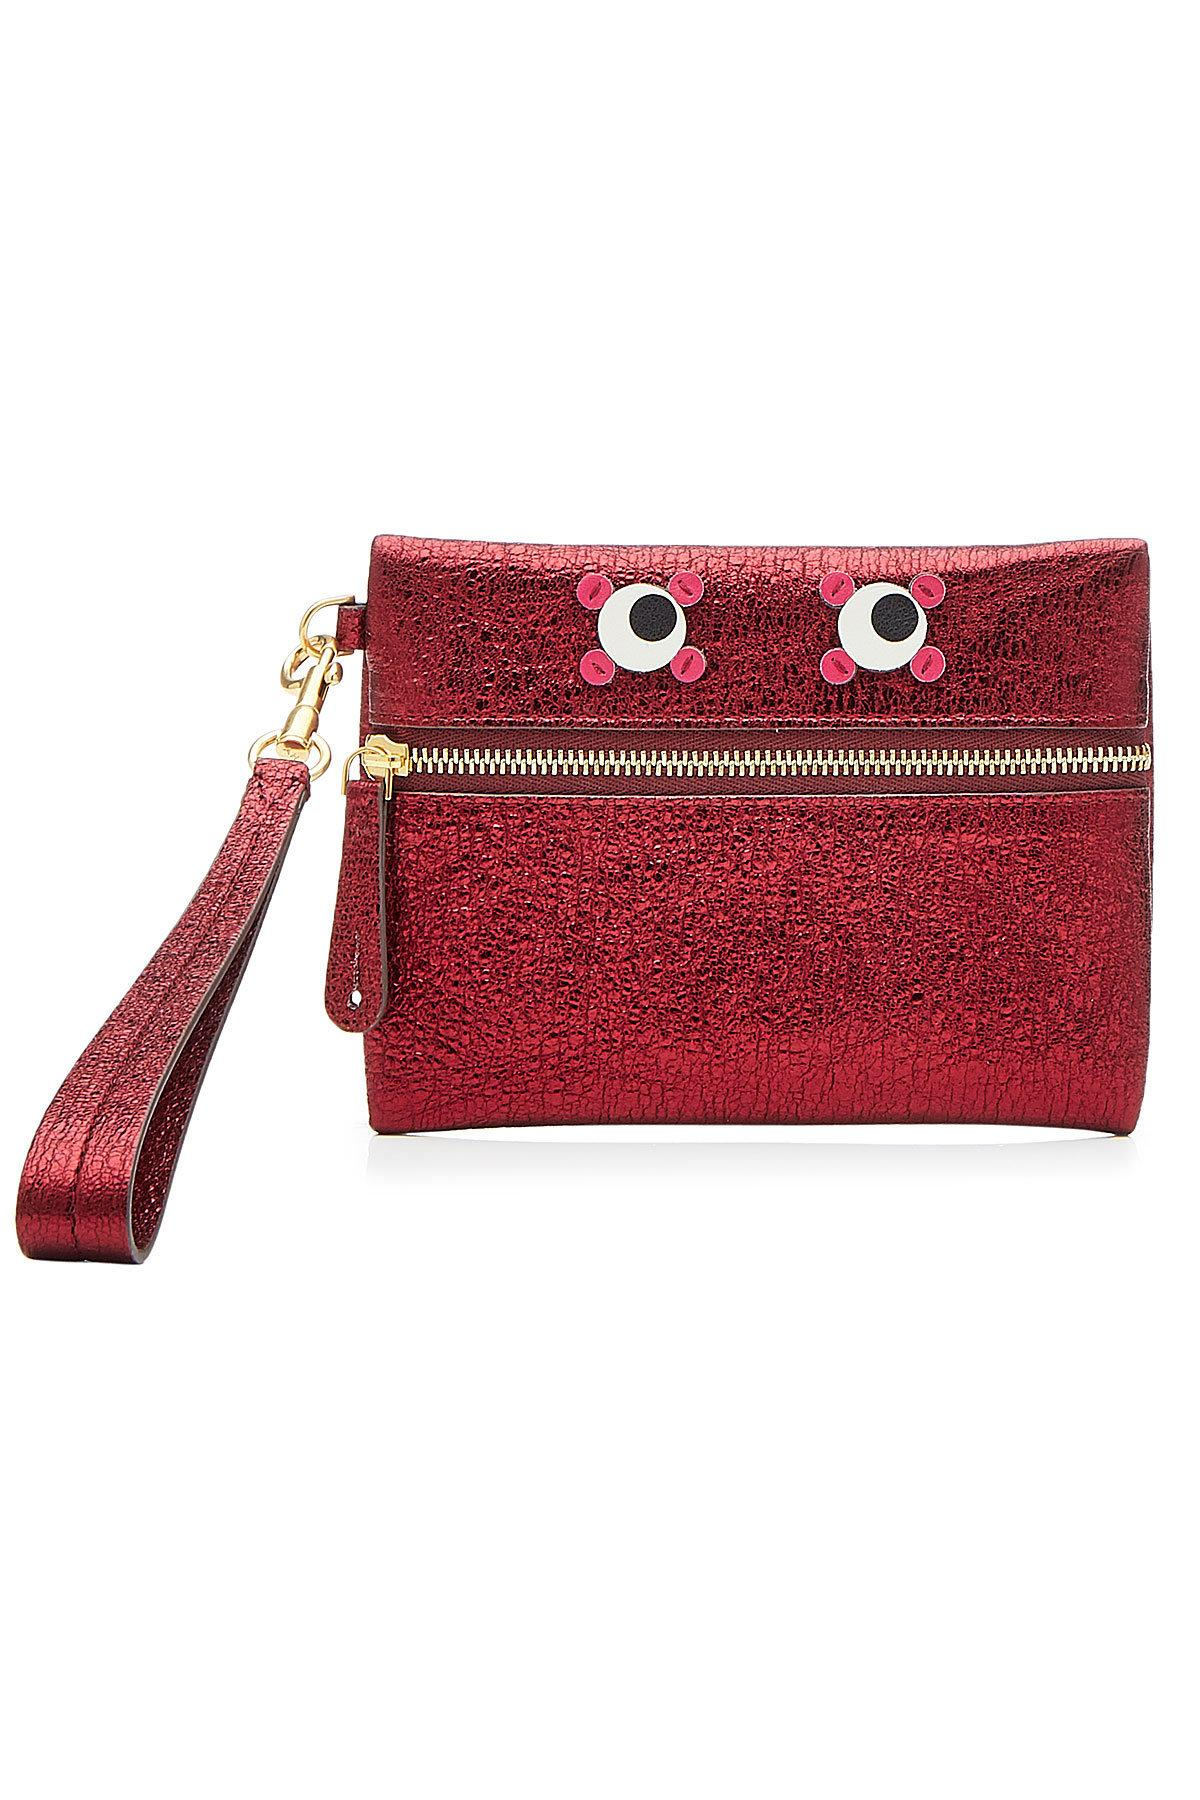 Anya Hindmarch Circulus Eyes Small Metallic Leather Pouch In Red